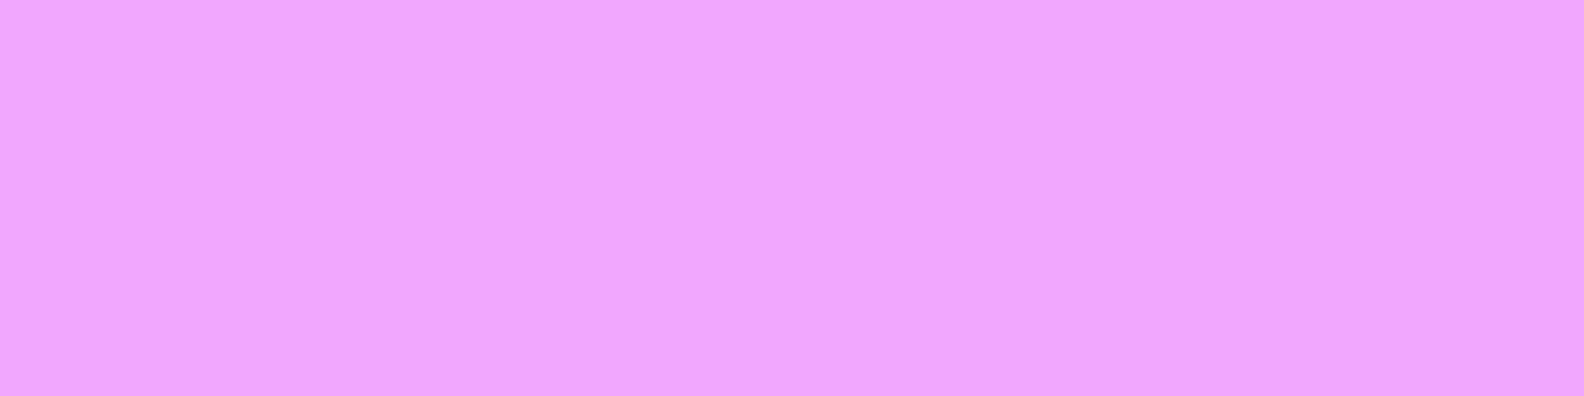 1584x396 Rich Brilliant Lavender Solid Color Background